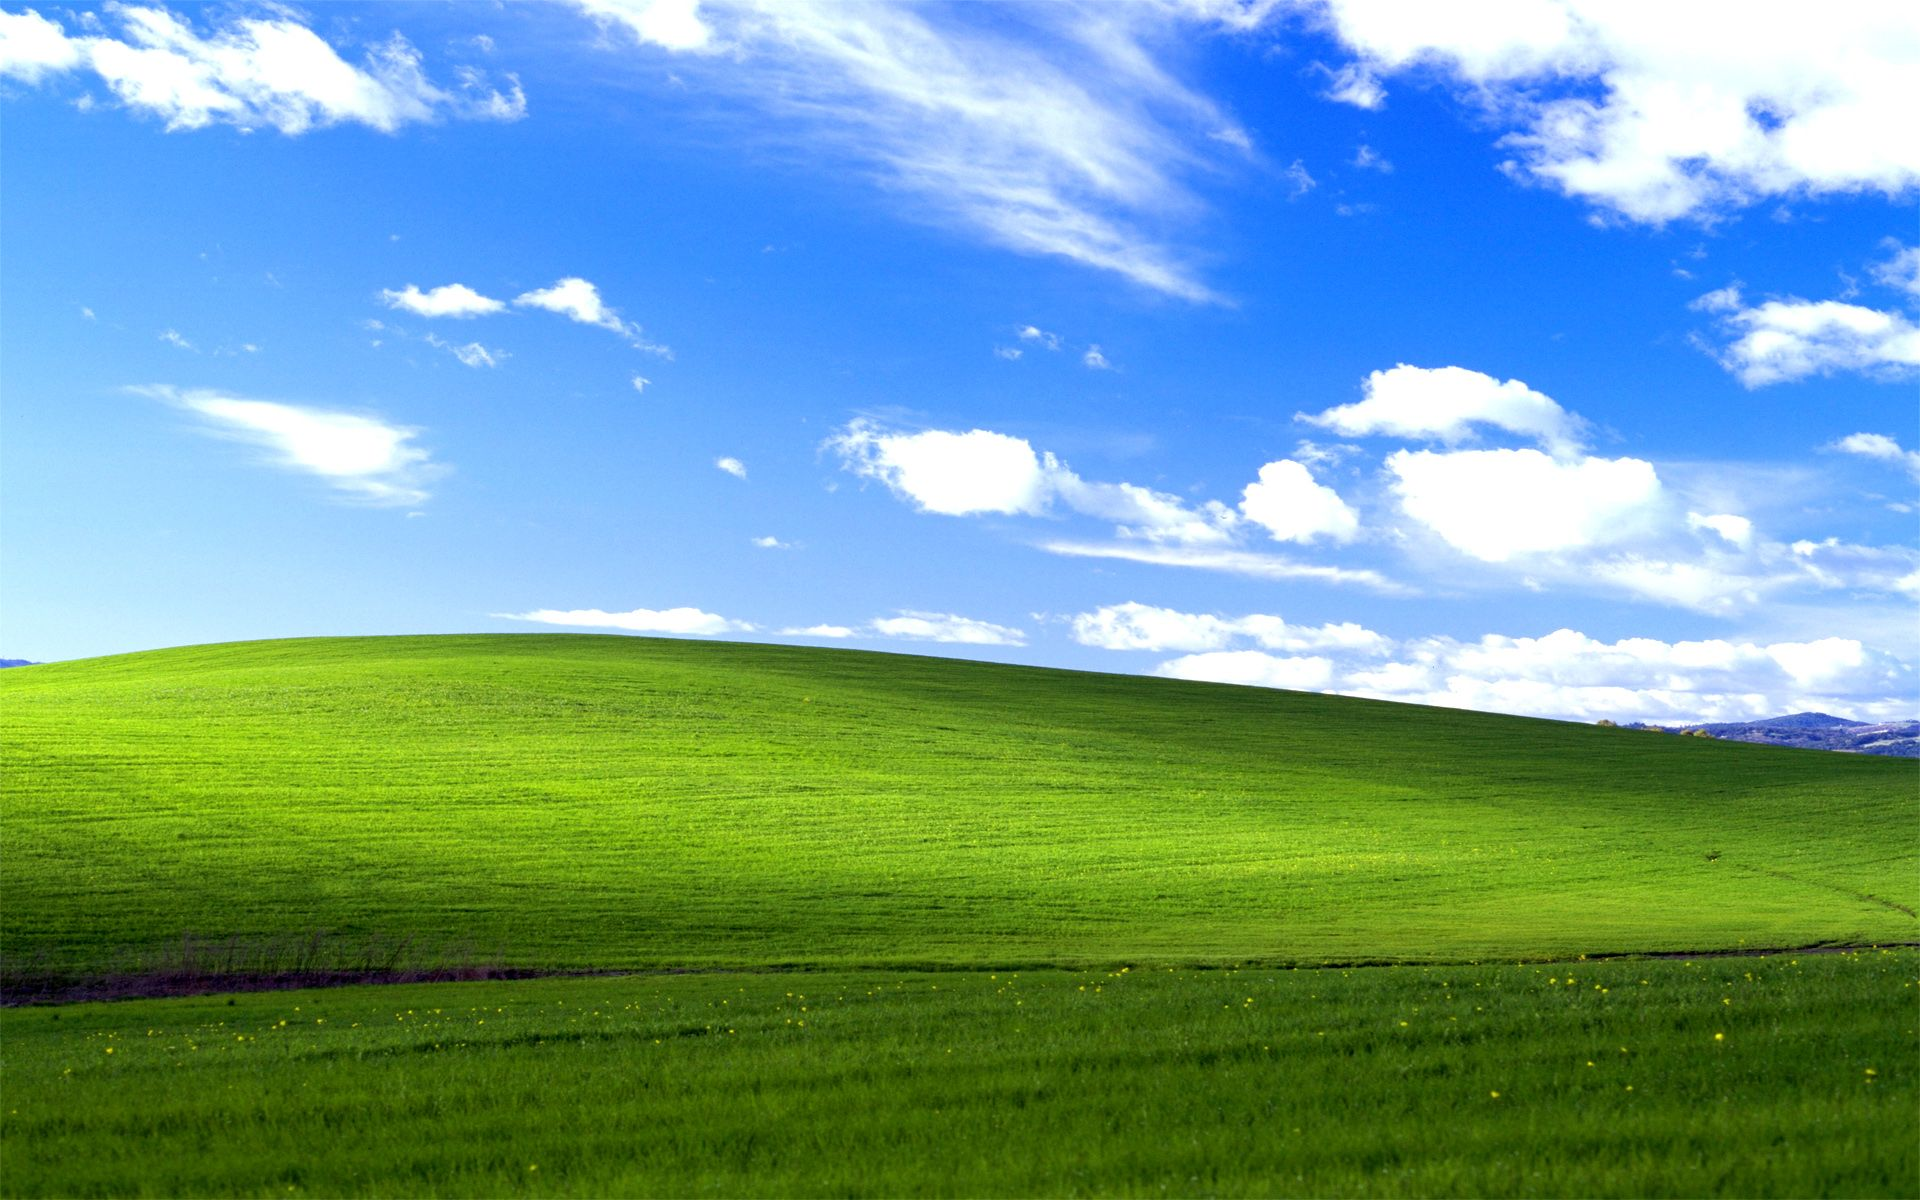 Windows XP Wallpapers - Top Free Windows XP Backgrounds